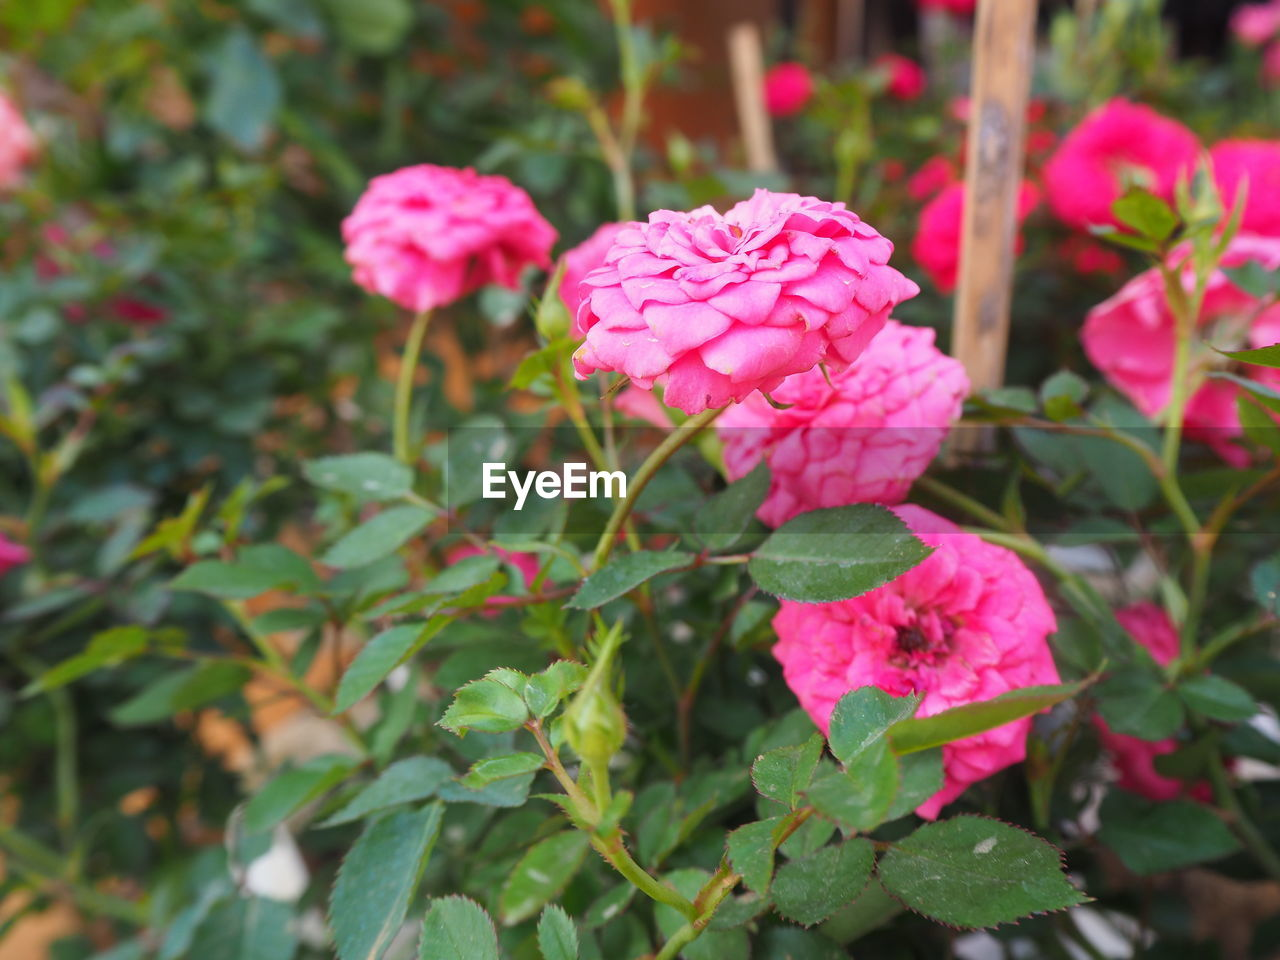 growth, pink color, nature, beauty in nature, petal, flower, fragility, plant, leaf, freshness, blooming, flower head, day, no people, green color, outdoors, close-up, periwinkle